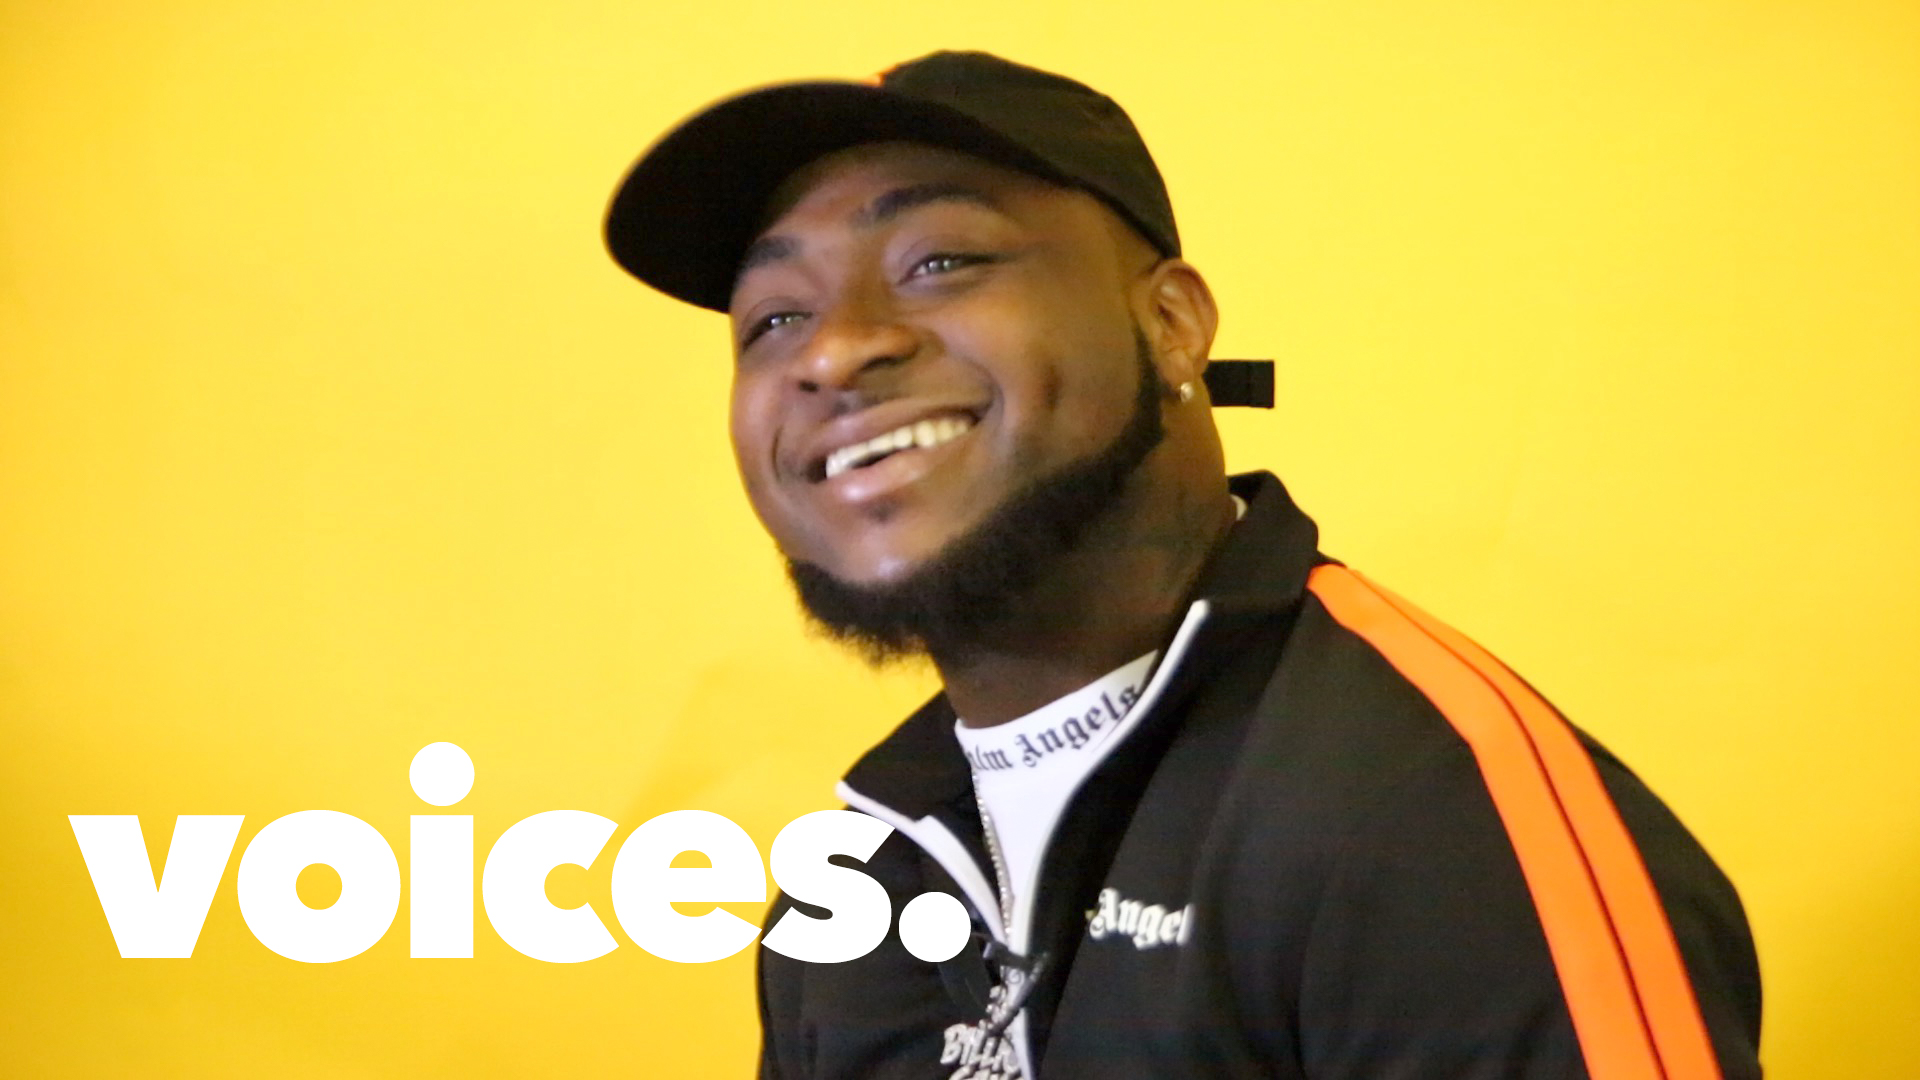 Voices: DaVIdo